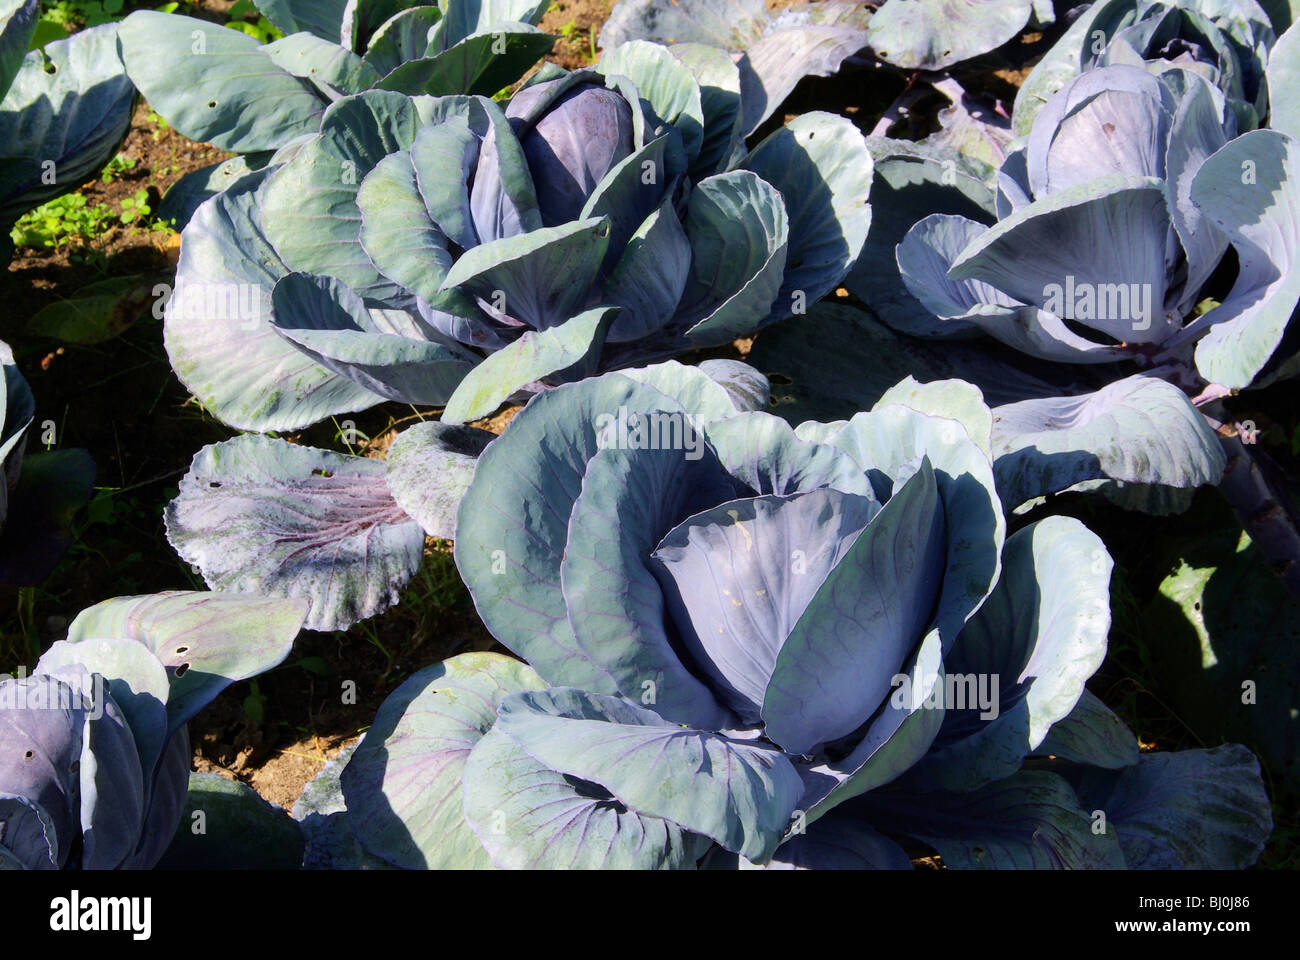 Rotkohl Feld - red cabbage field 01 - Stock Image